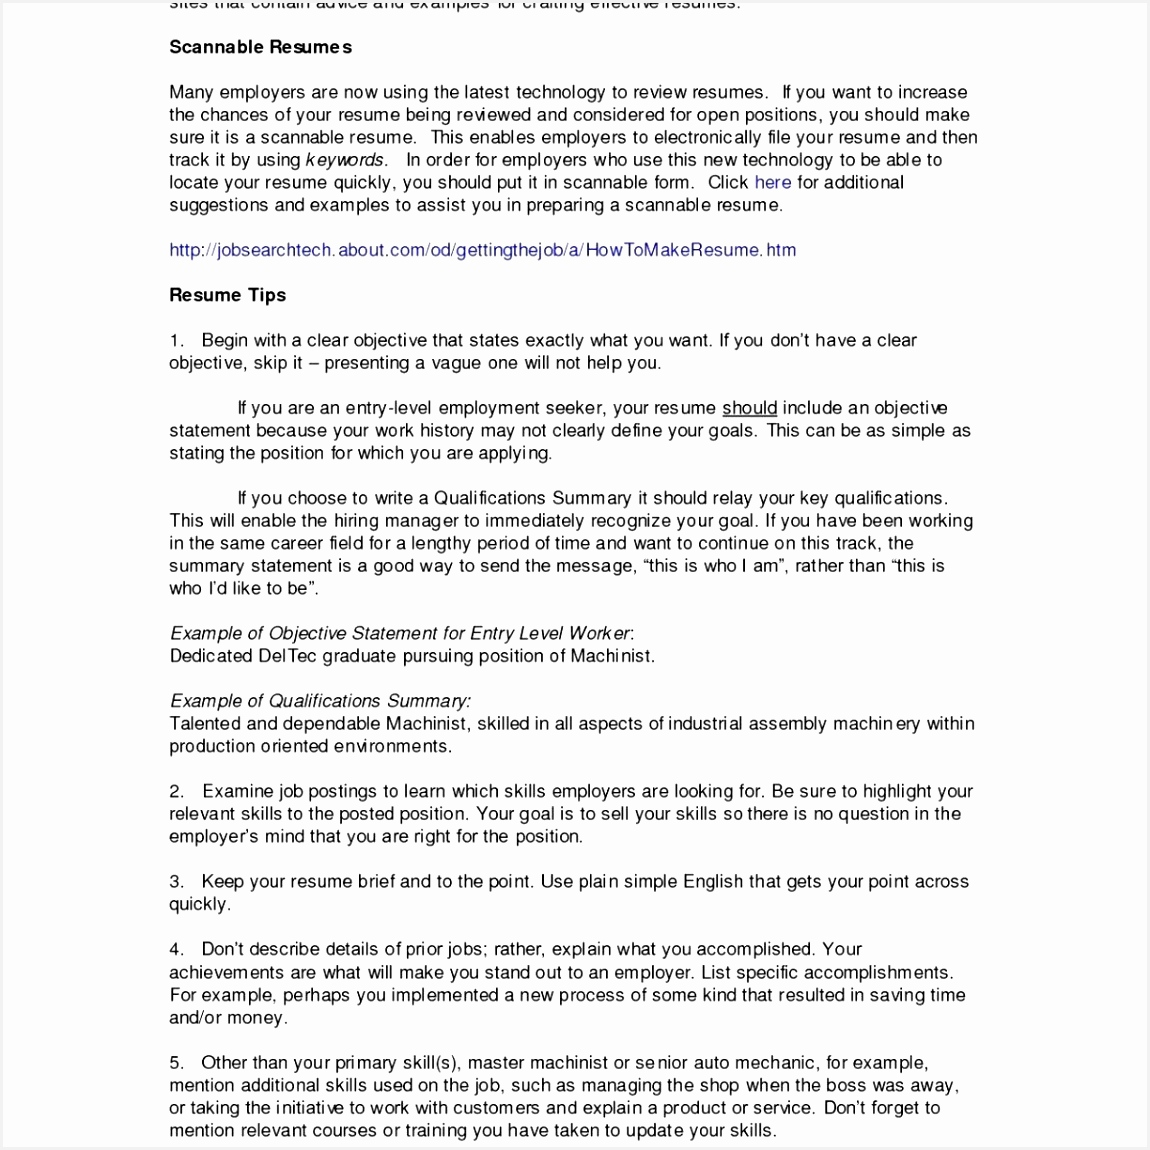 Resume format for System Administrator 2vxth Luxury Hadoop Admin Resume New Sample System Administrator Resume Of 5 Resume format for System Administrator